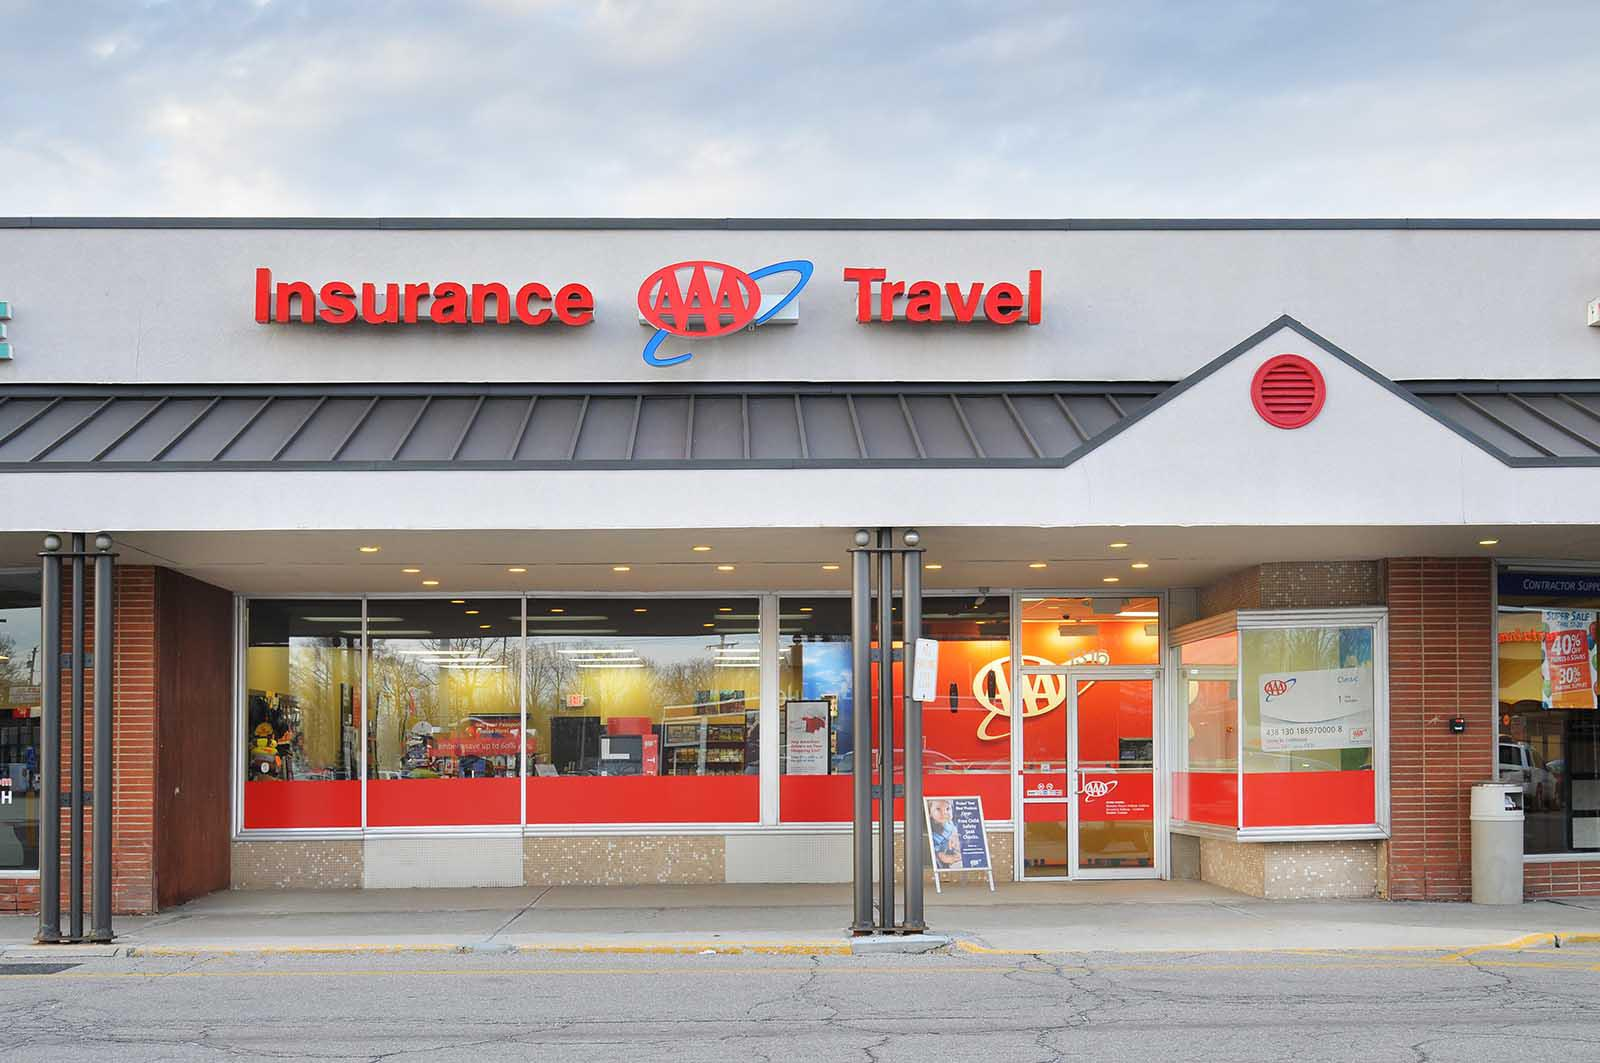 Aaa Near Me >> Visit Your Aaa At Marion Oh At 1316 Mount Vernon Ave For Car